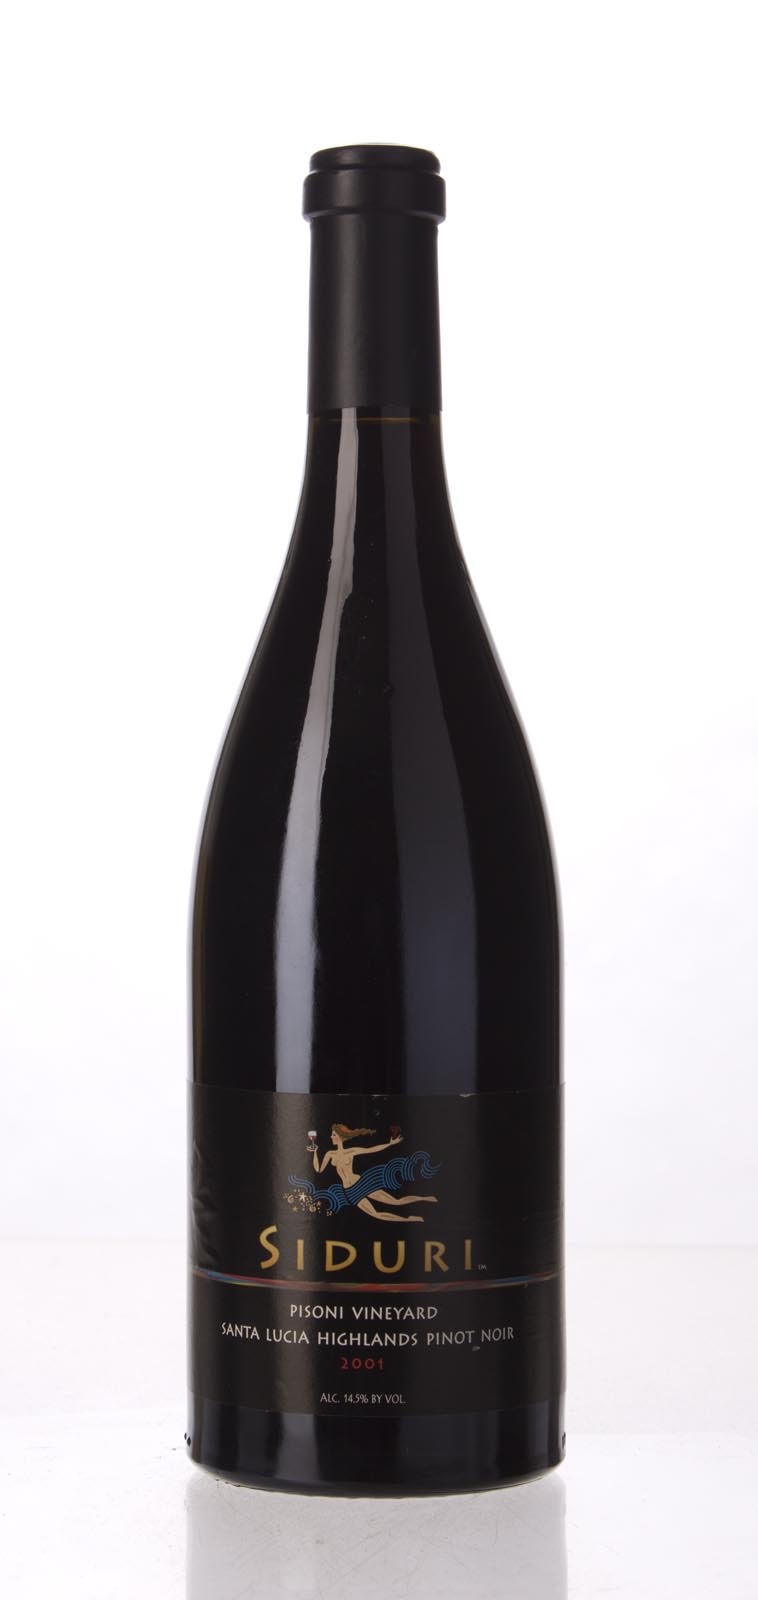 Siduri Pinot Noir Pisoni Vineyard 2001, 750mL (WS91) from The BPW - Merchants of rare and fine wines.